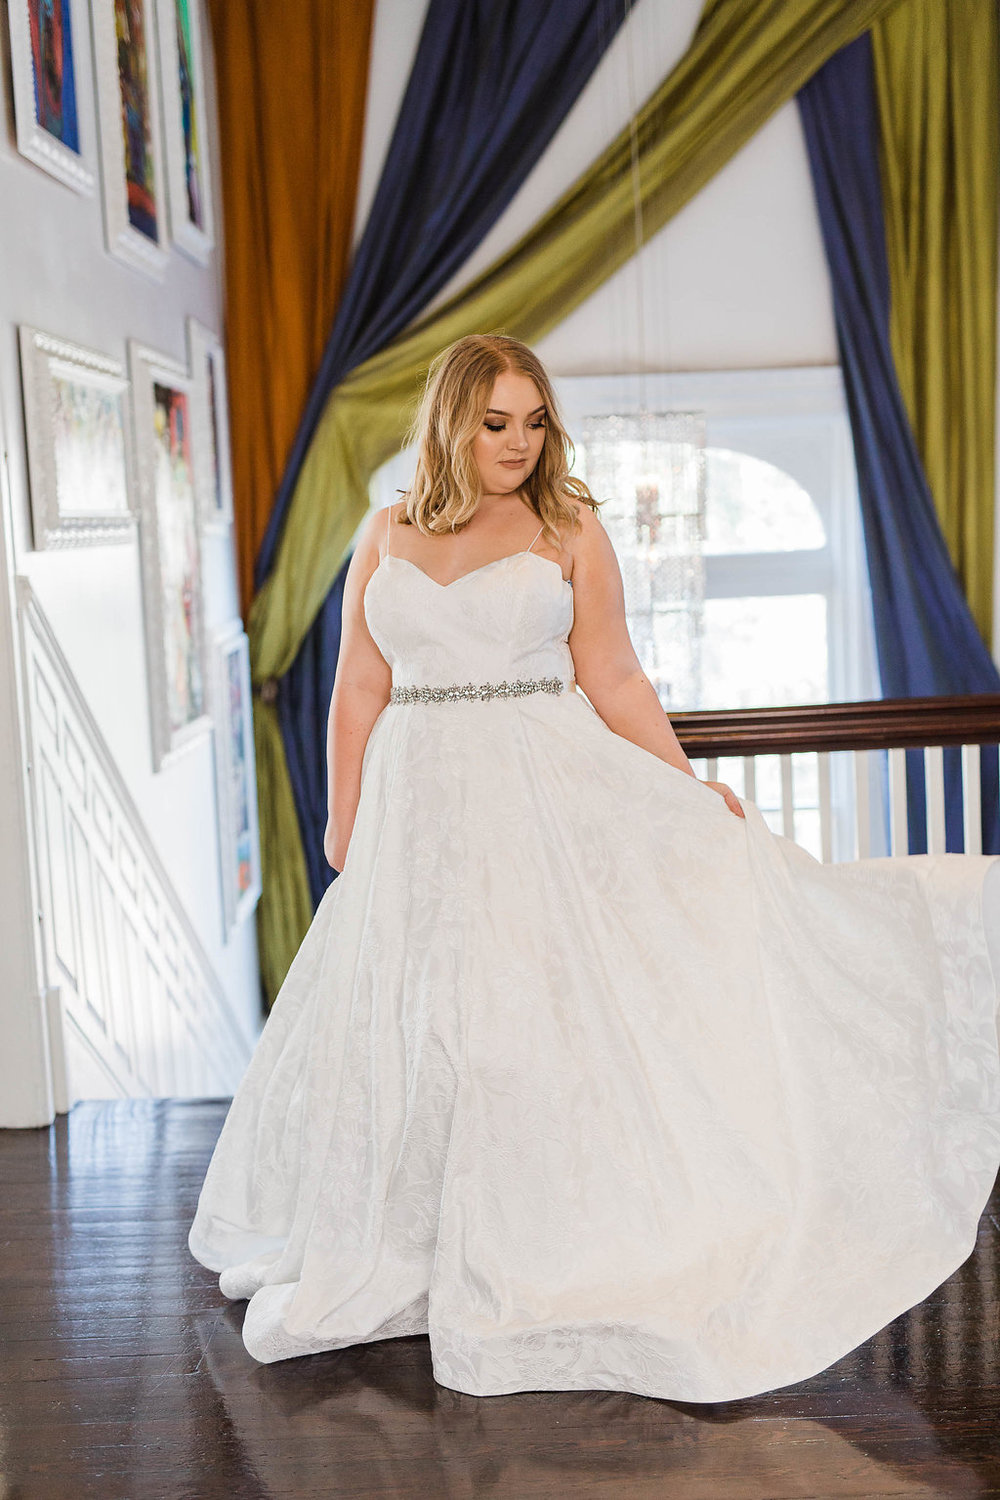 ivory-and-beau-bridal-boutique-savannah-wedding-dress-savannah-wedding-gown-savannah-bridal-boutique-savannah-bridesmaids-savannah-plus-sized-wedding-gowns-plus-sized-wedding-dresses-savannah-maggie-sottero-savannah-1.JPG